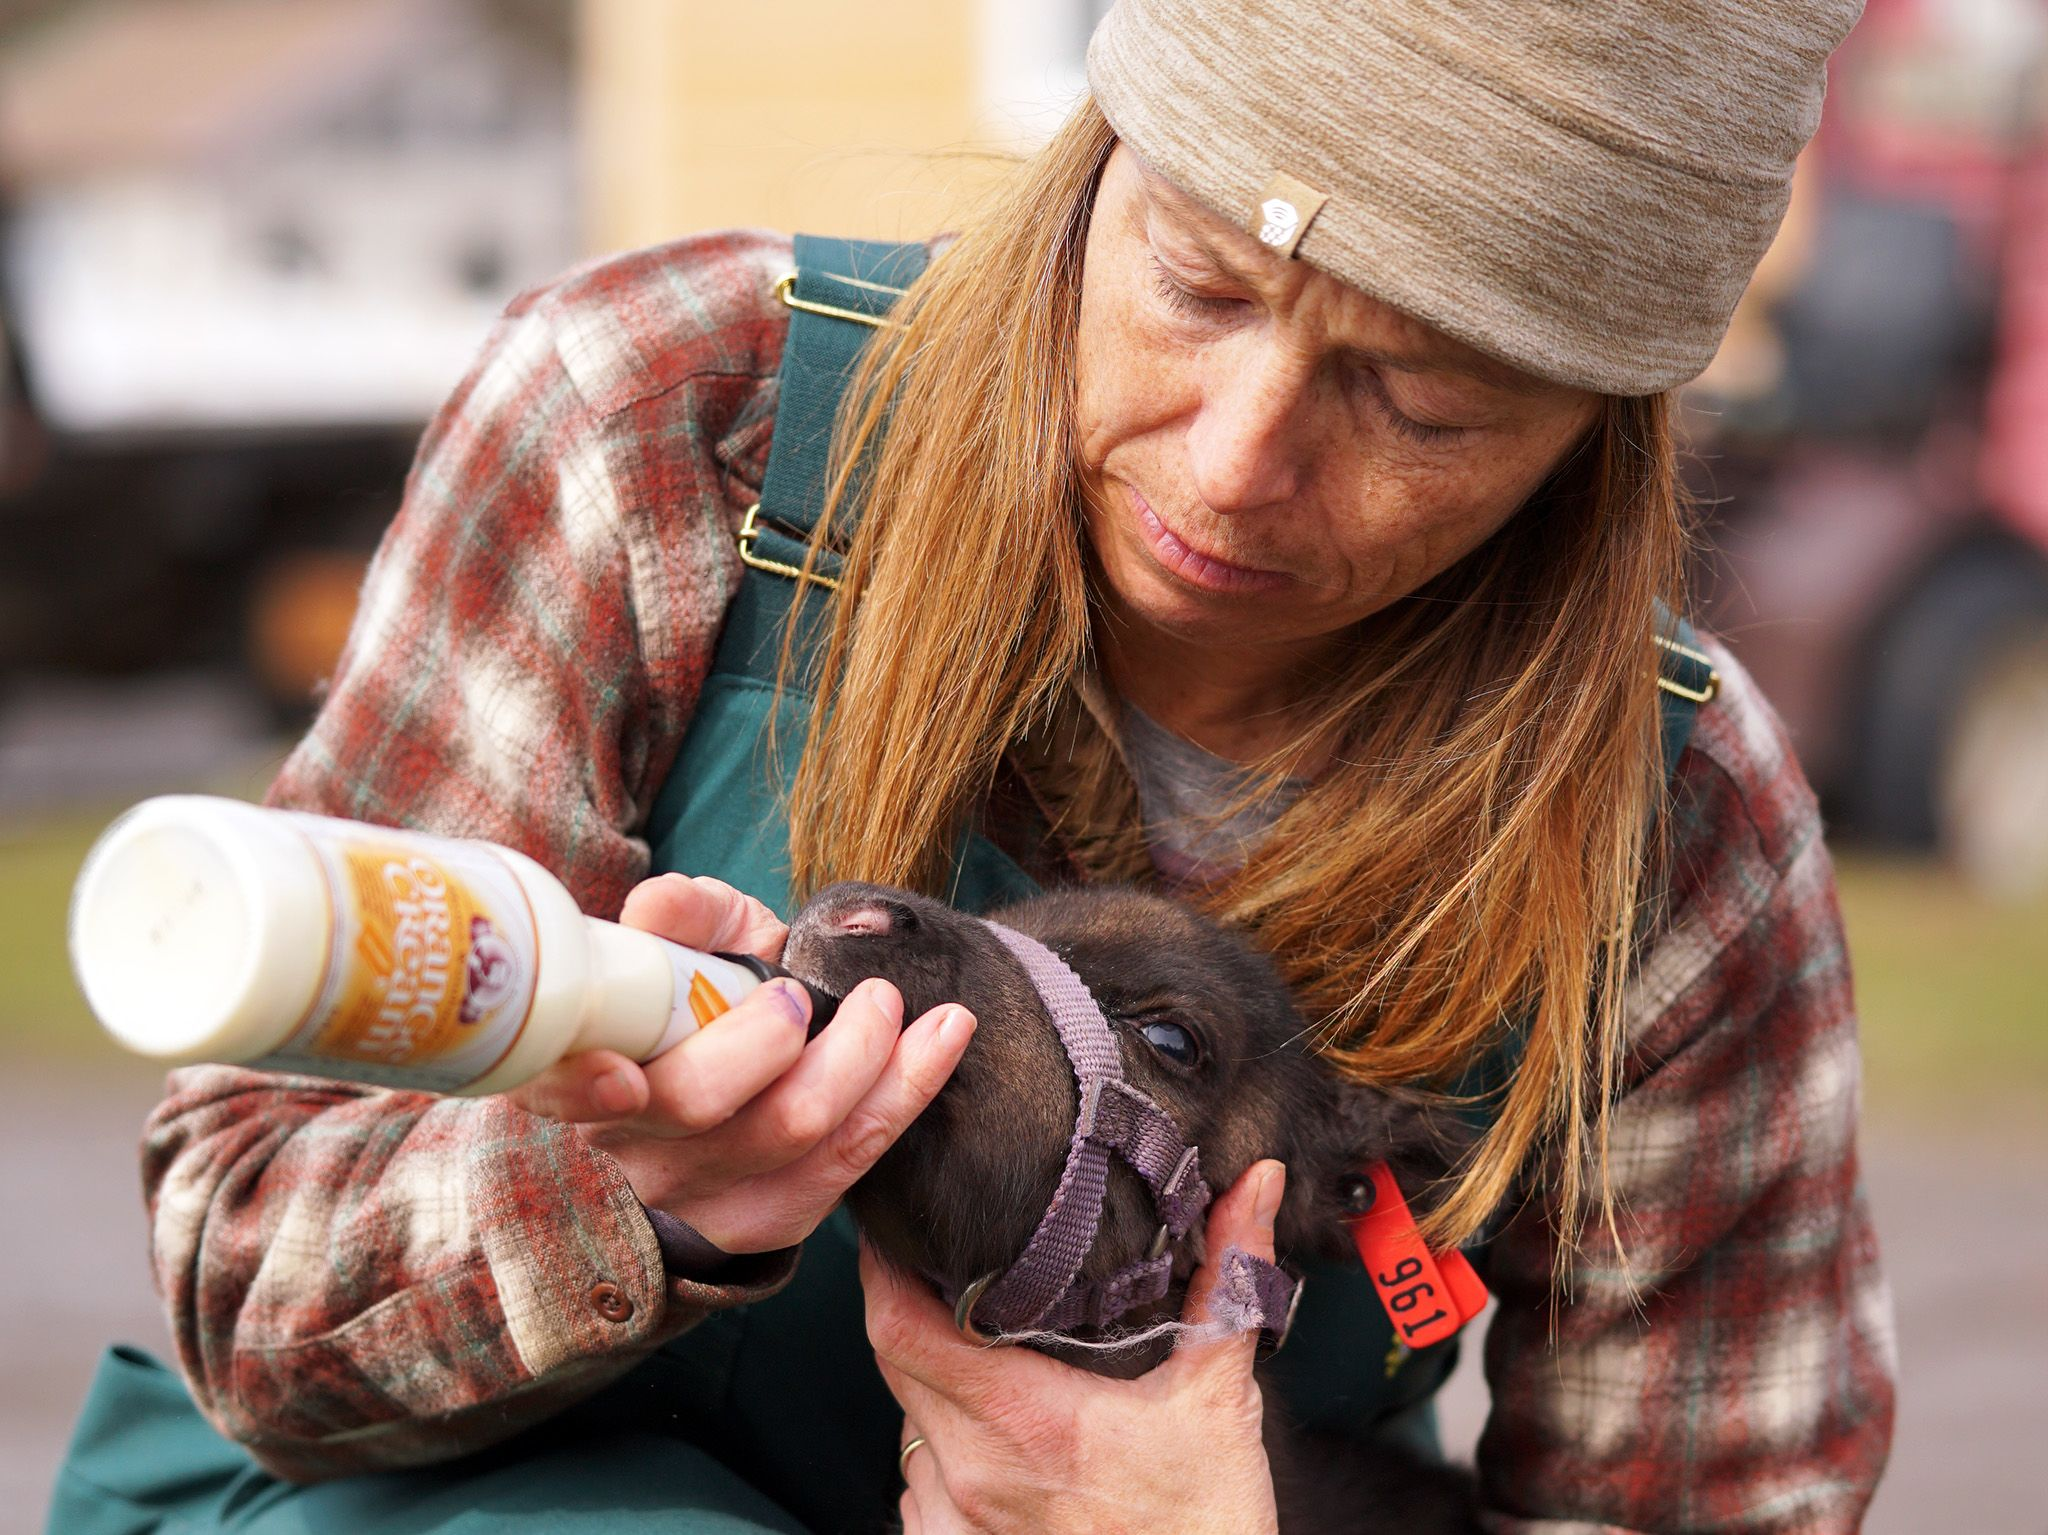 Dr. Michelle Oakley feeds a newborn reindeer calf. This image is from Dr. Oakley: Yukon Vet. [Foto del giorno - October 2019]